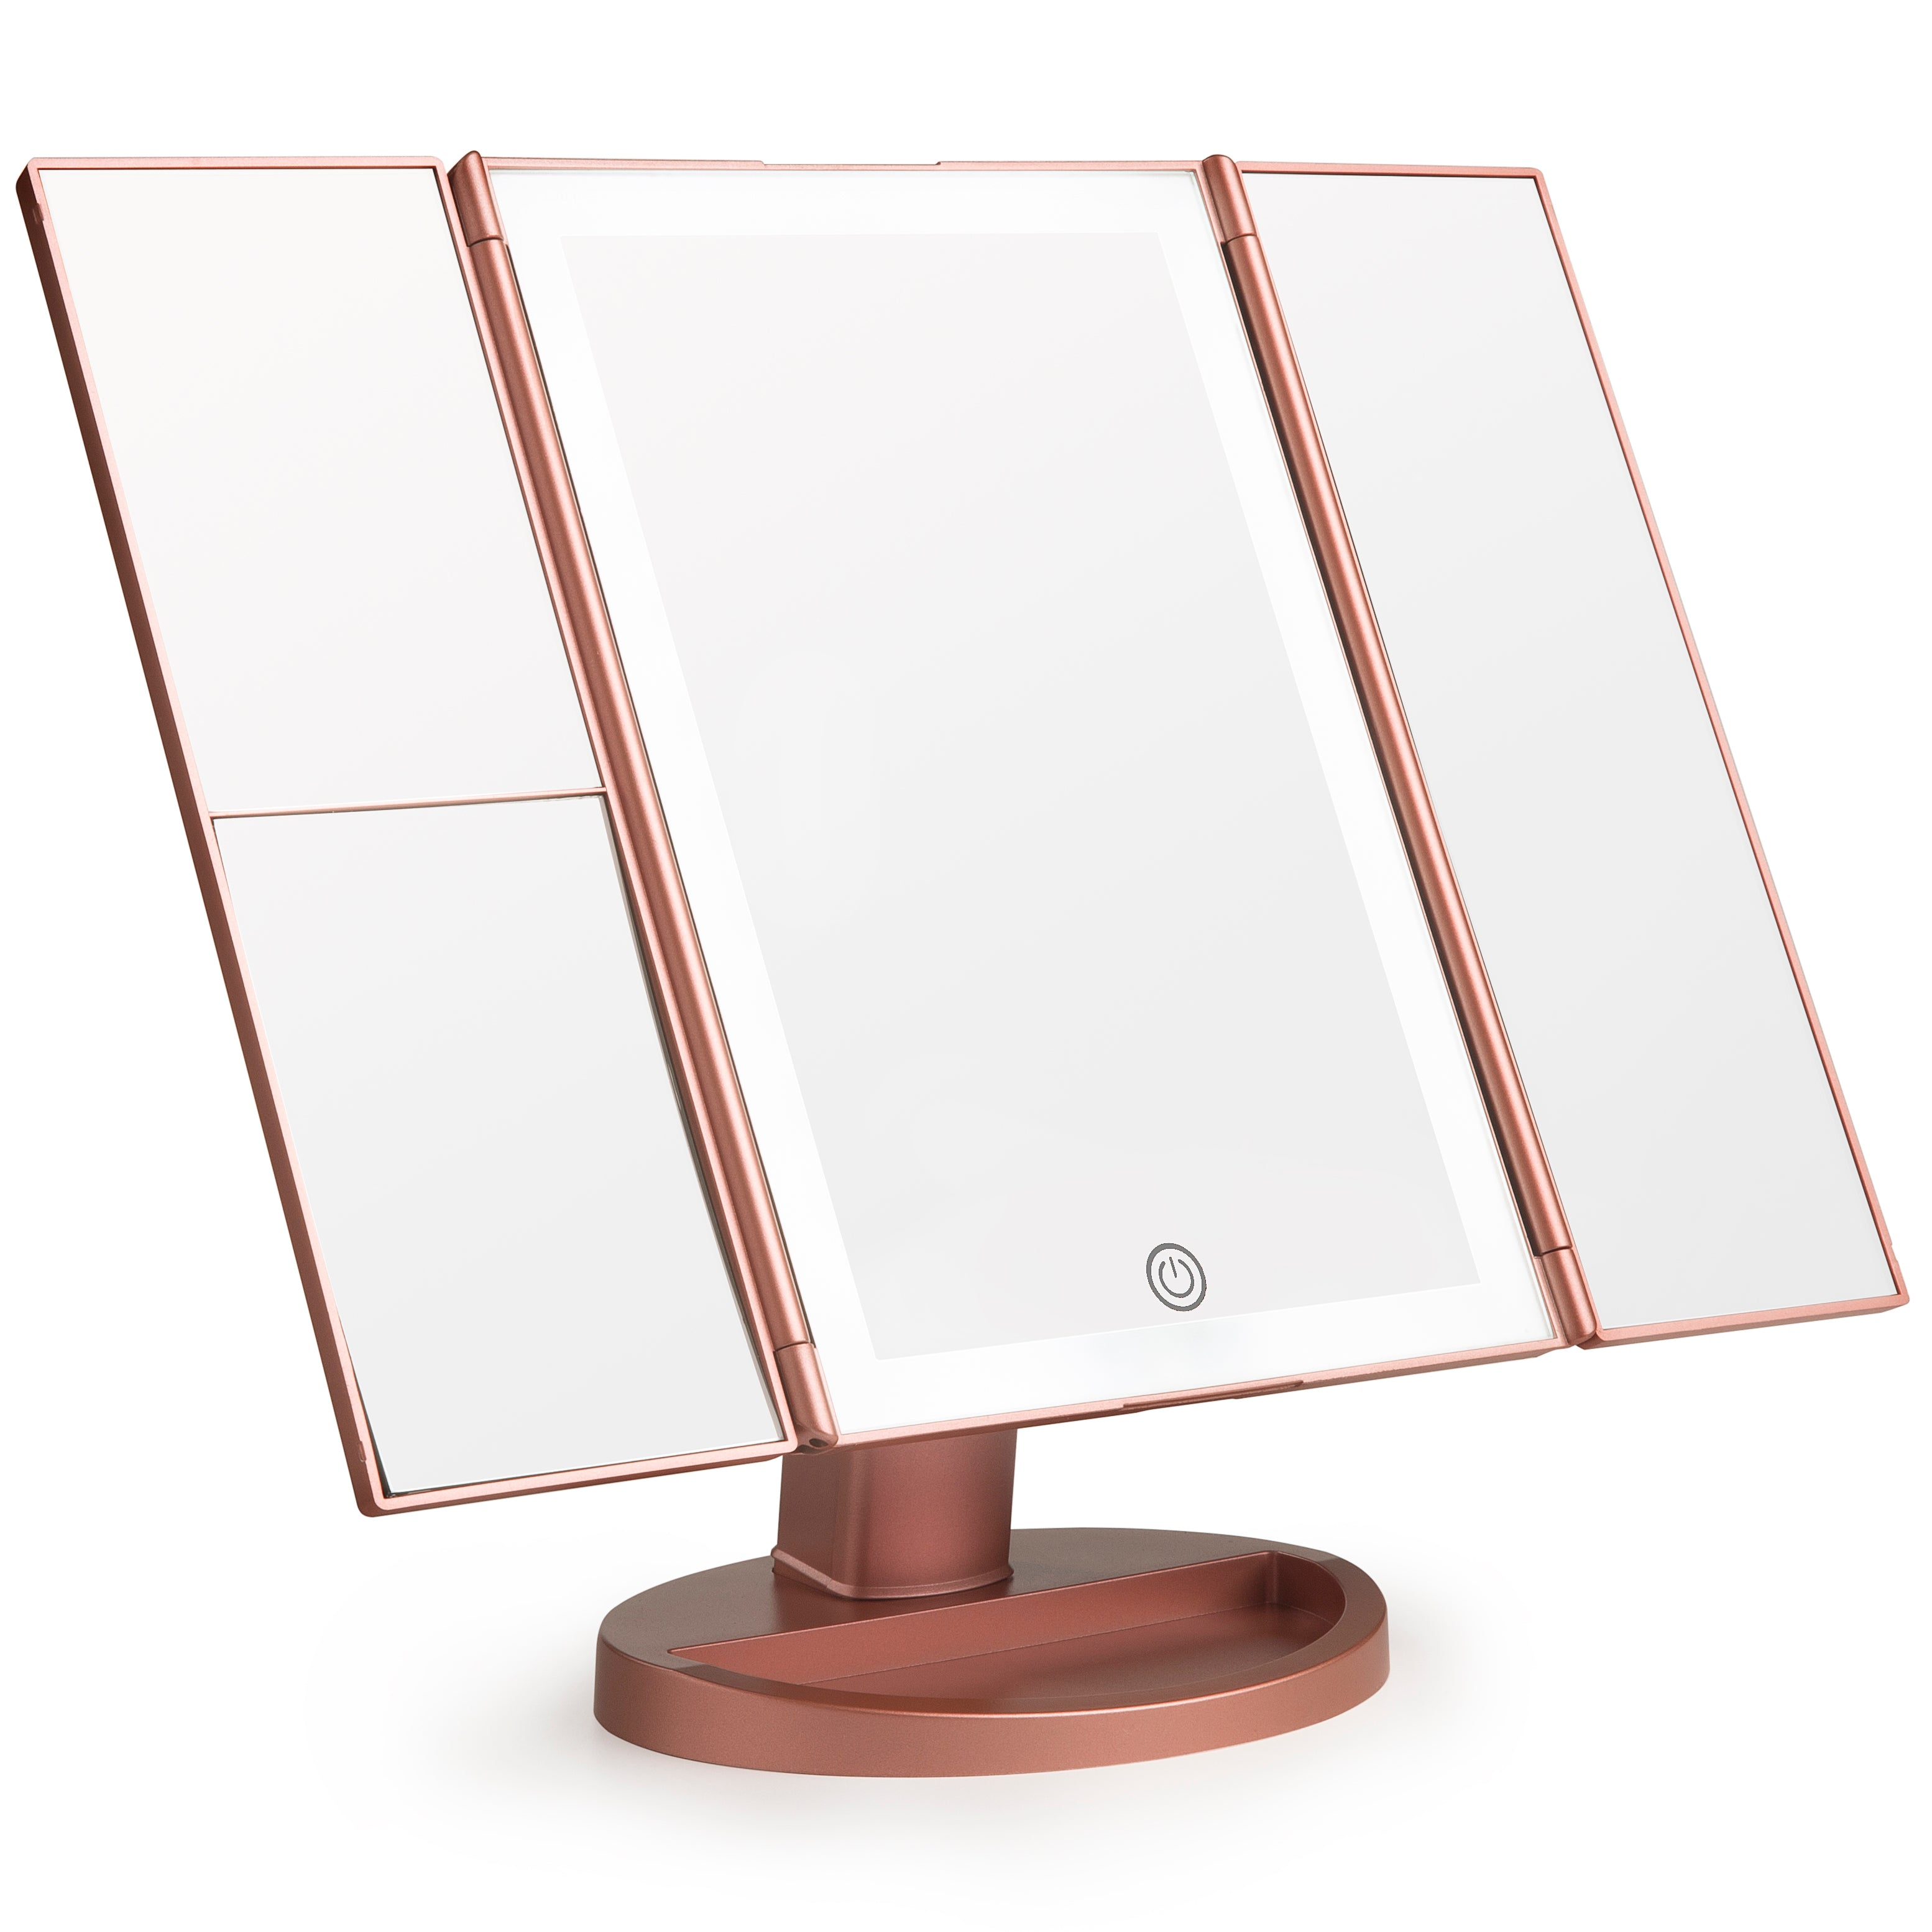 LIT by Prosper Beauty (LED Panoramic Vanity Mirror - Rose Gold)